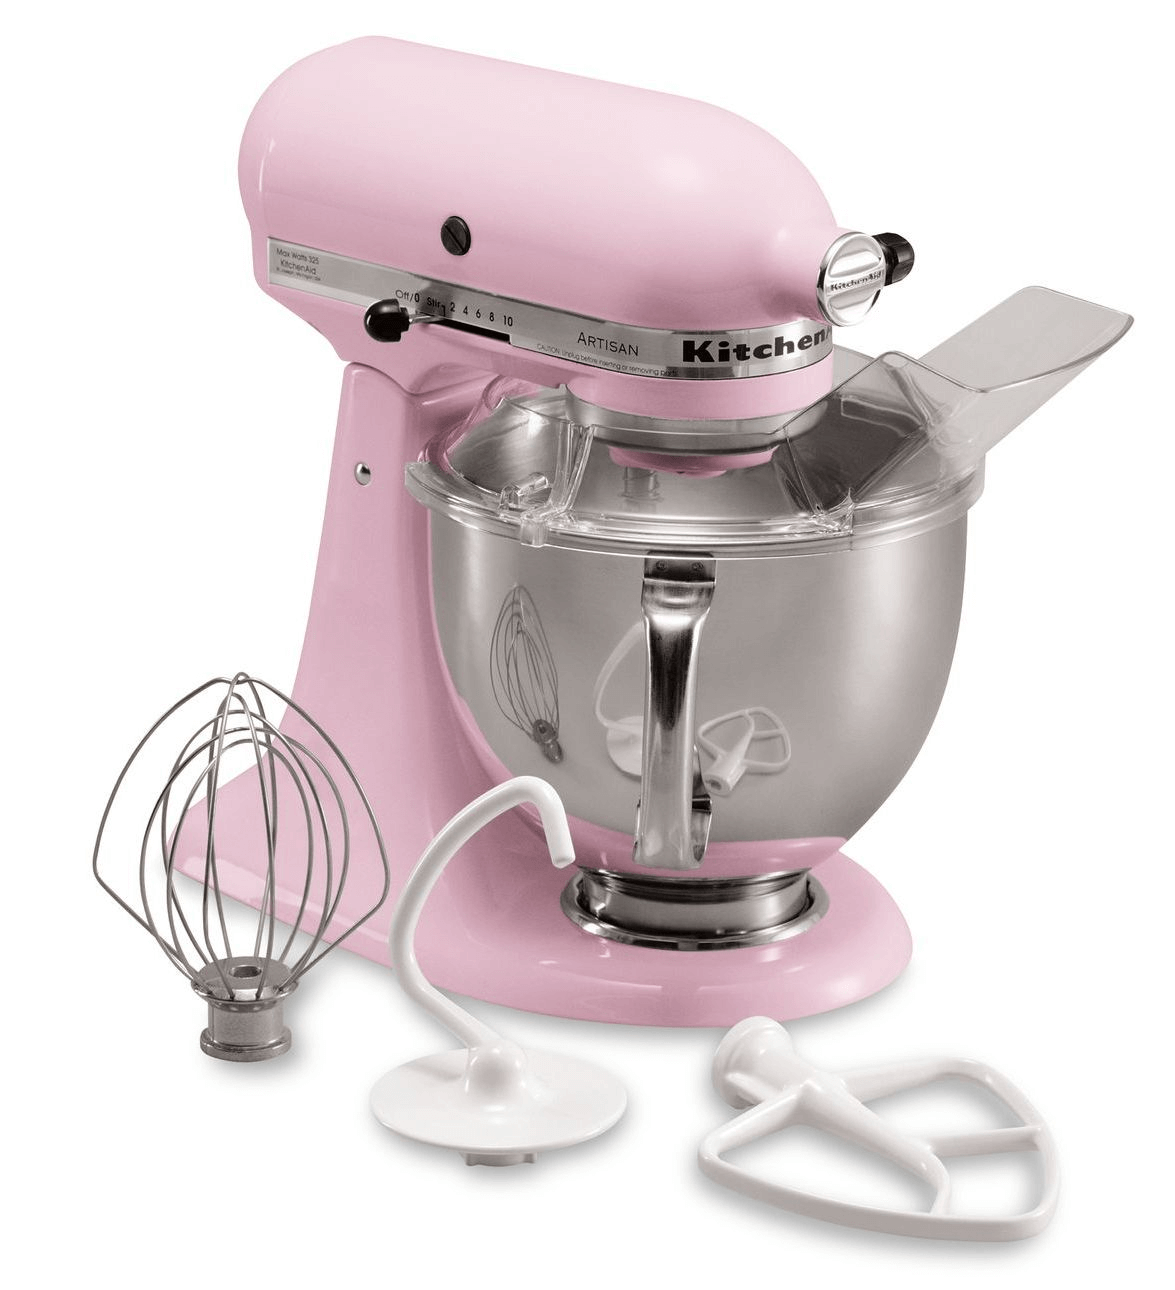 Kitchenaid mixer pink